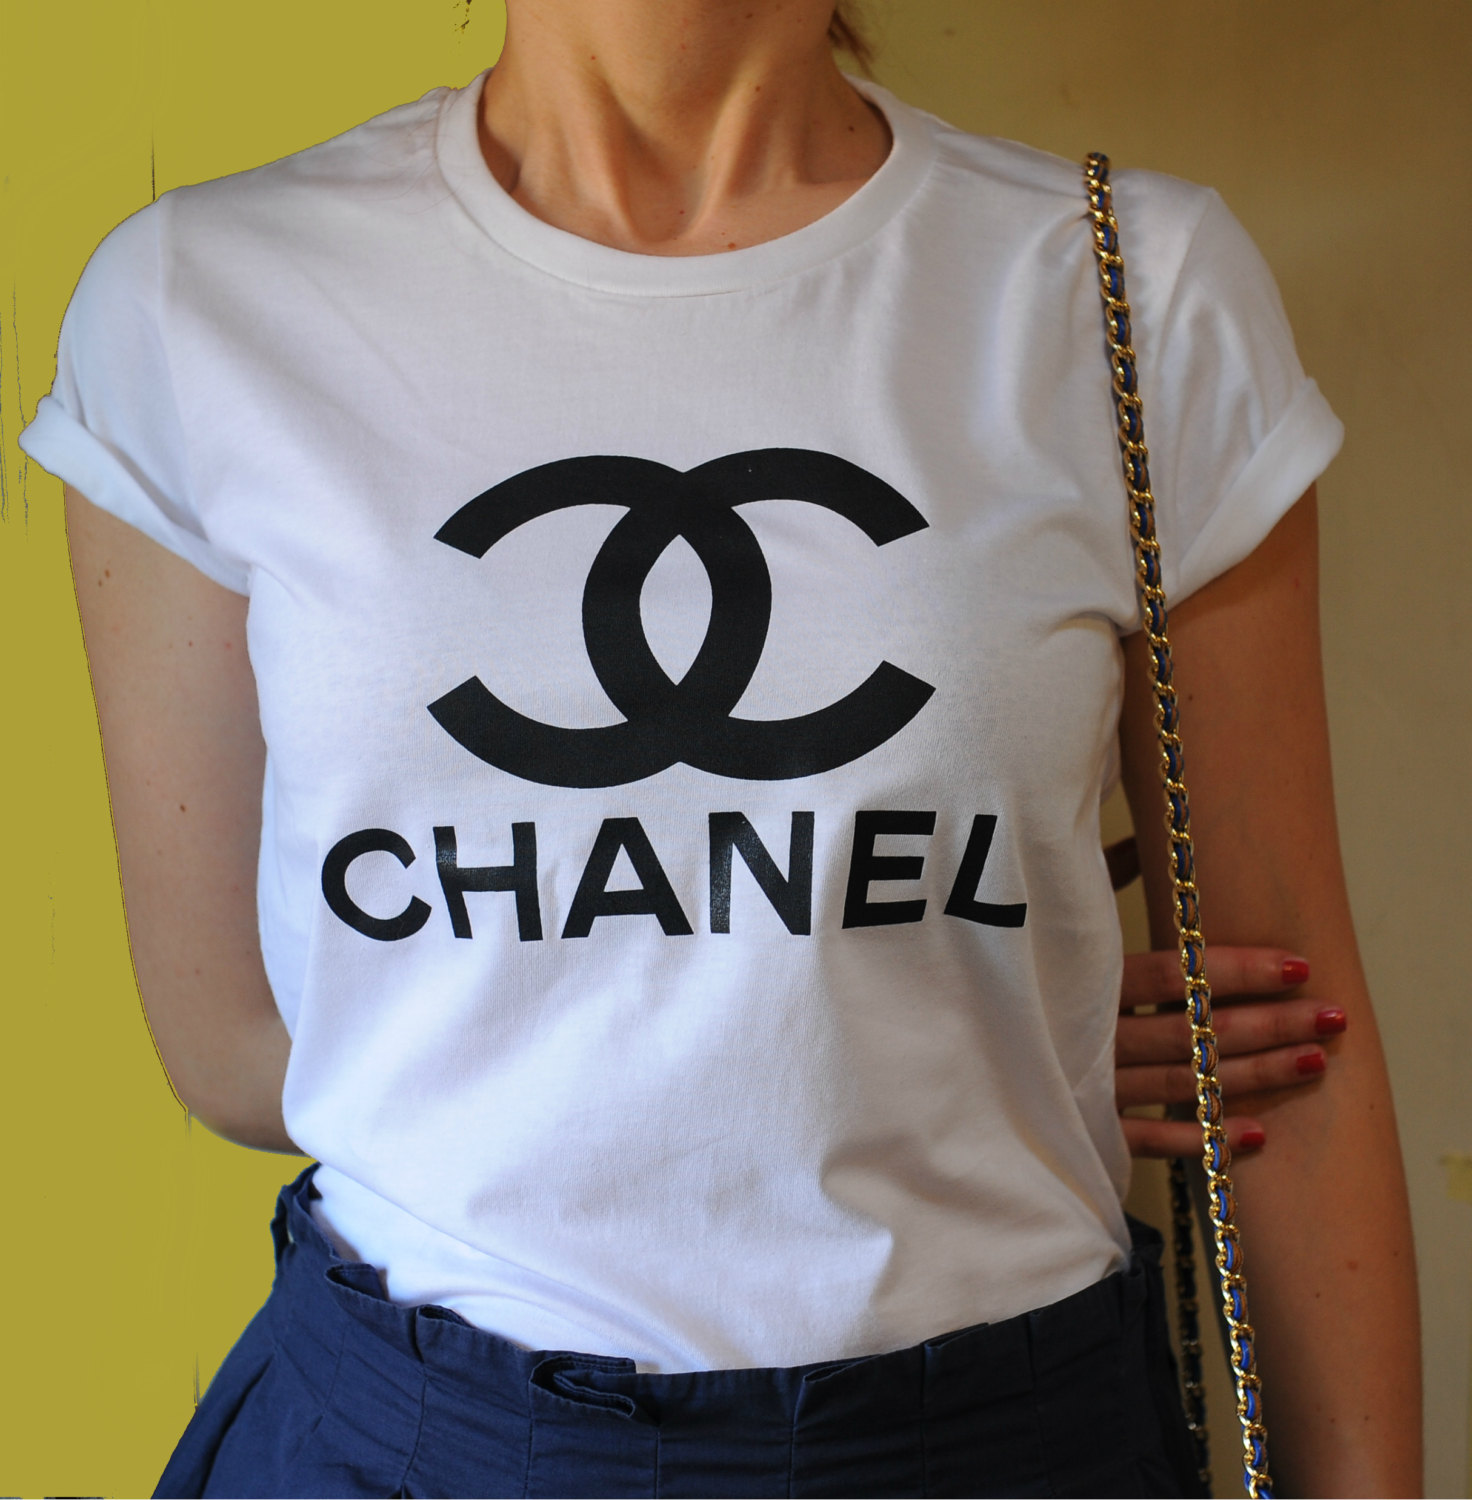 chanel t shirt chanel shirt style printed t shirt woman tee woman t shirt celebrity tee. Black Bedroom Furniture Sets. Home Design Ideas